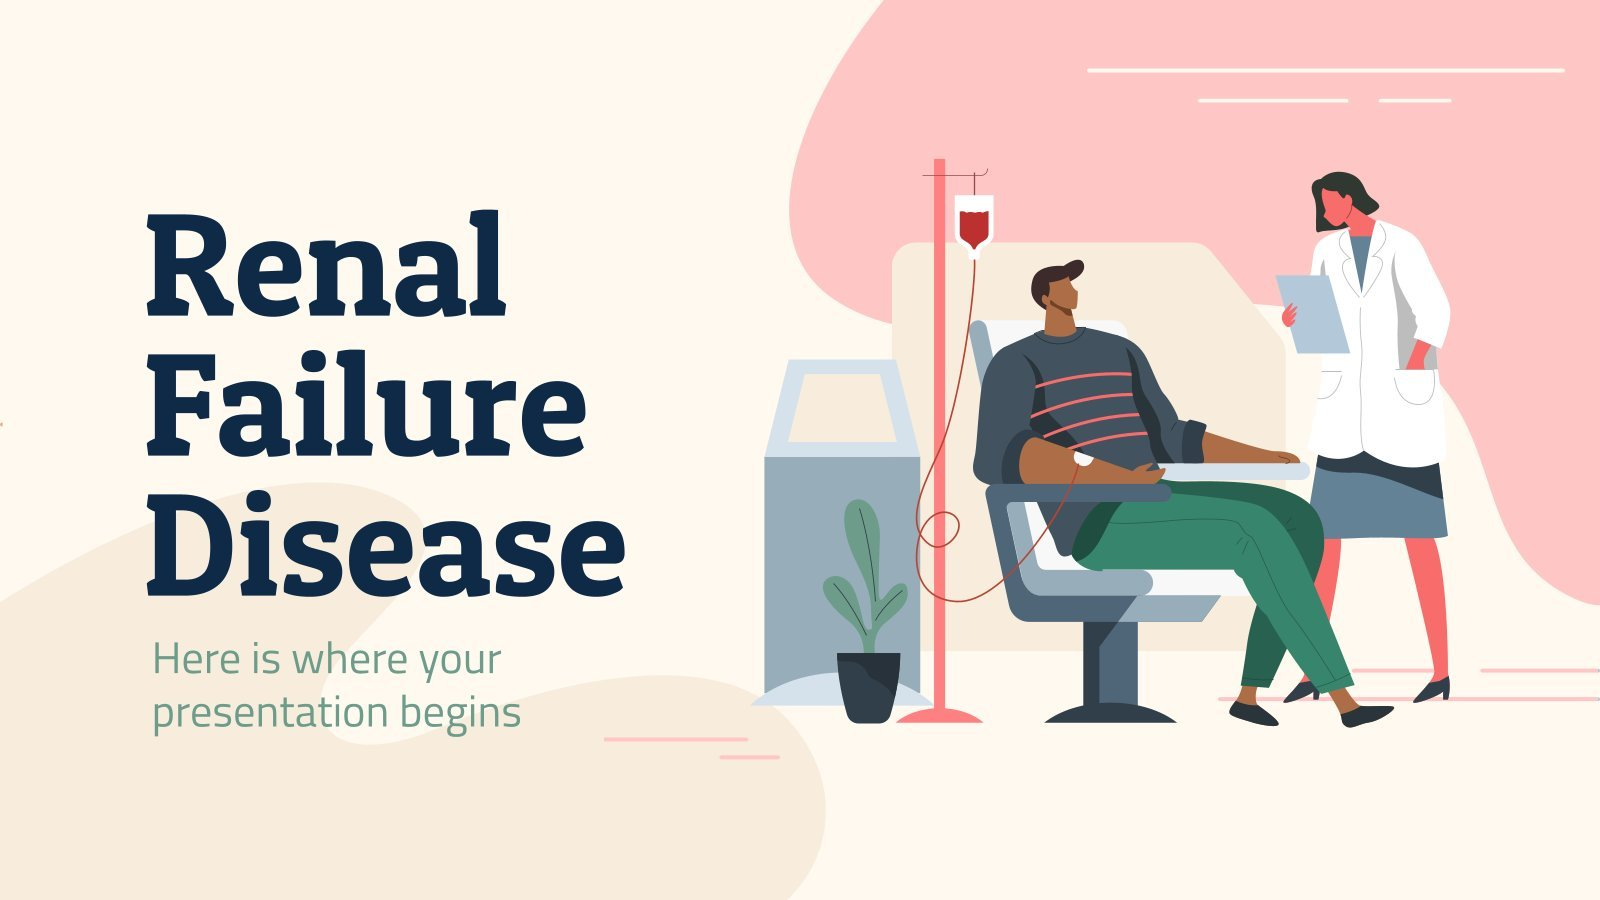 Renal Failure Disease presentation template